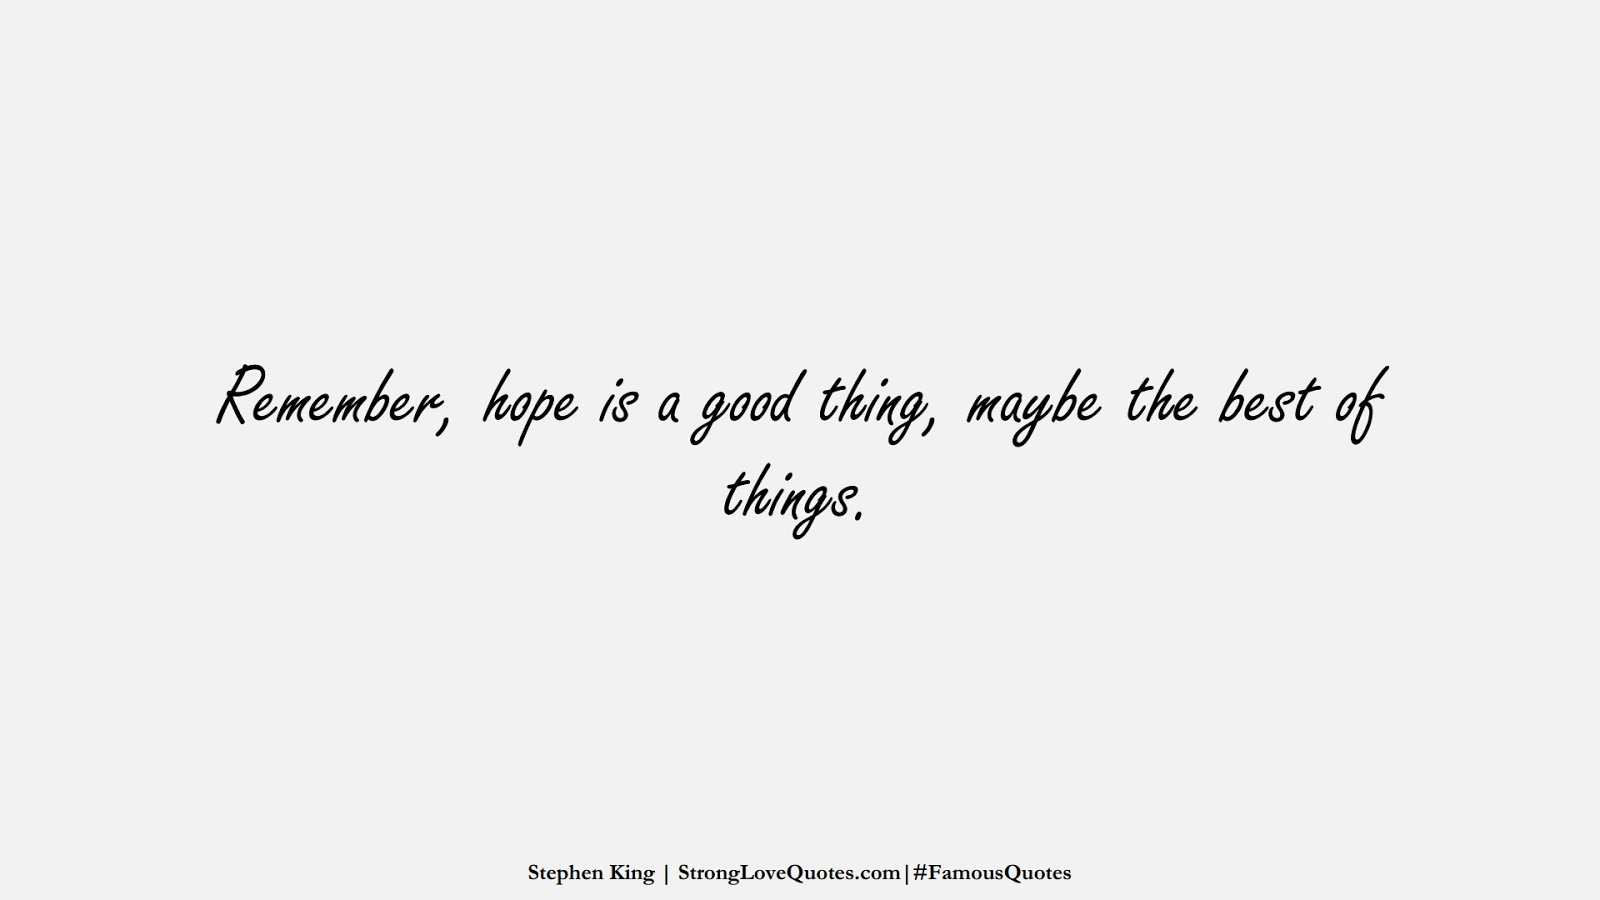 Remember, hope is a good thing, maybe the best of things. (Stephen King);  #FamousQuotes